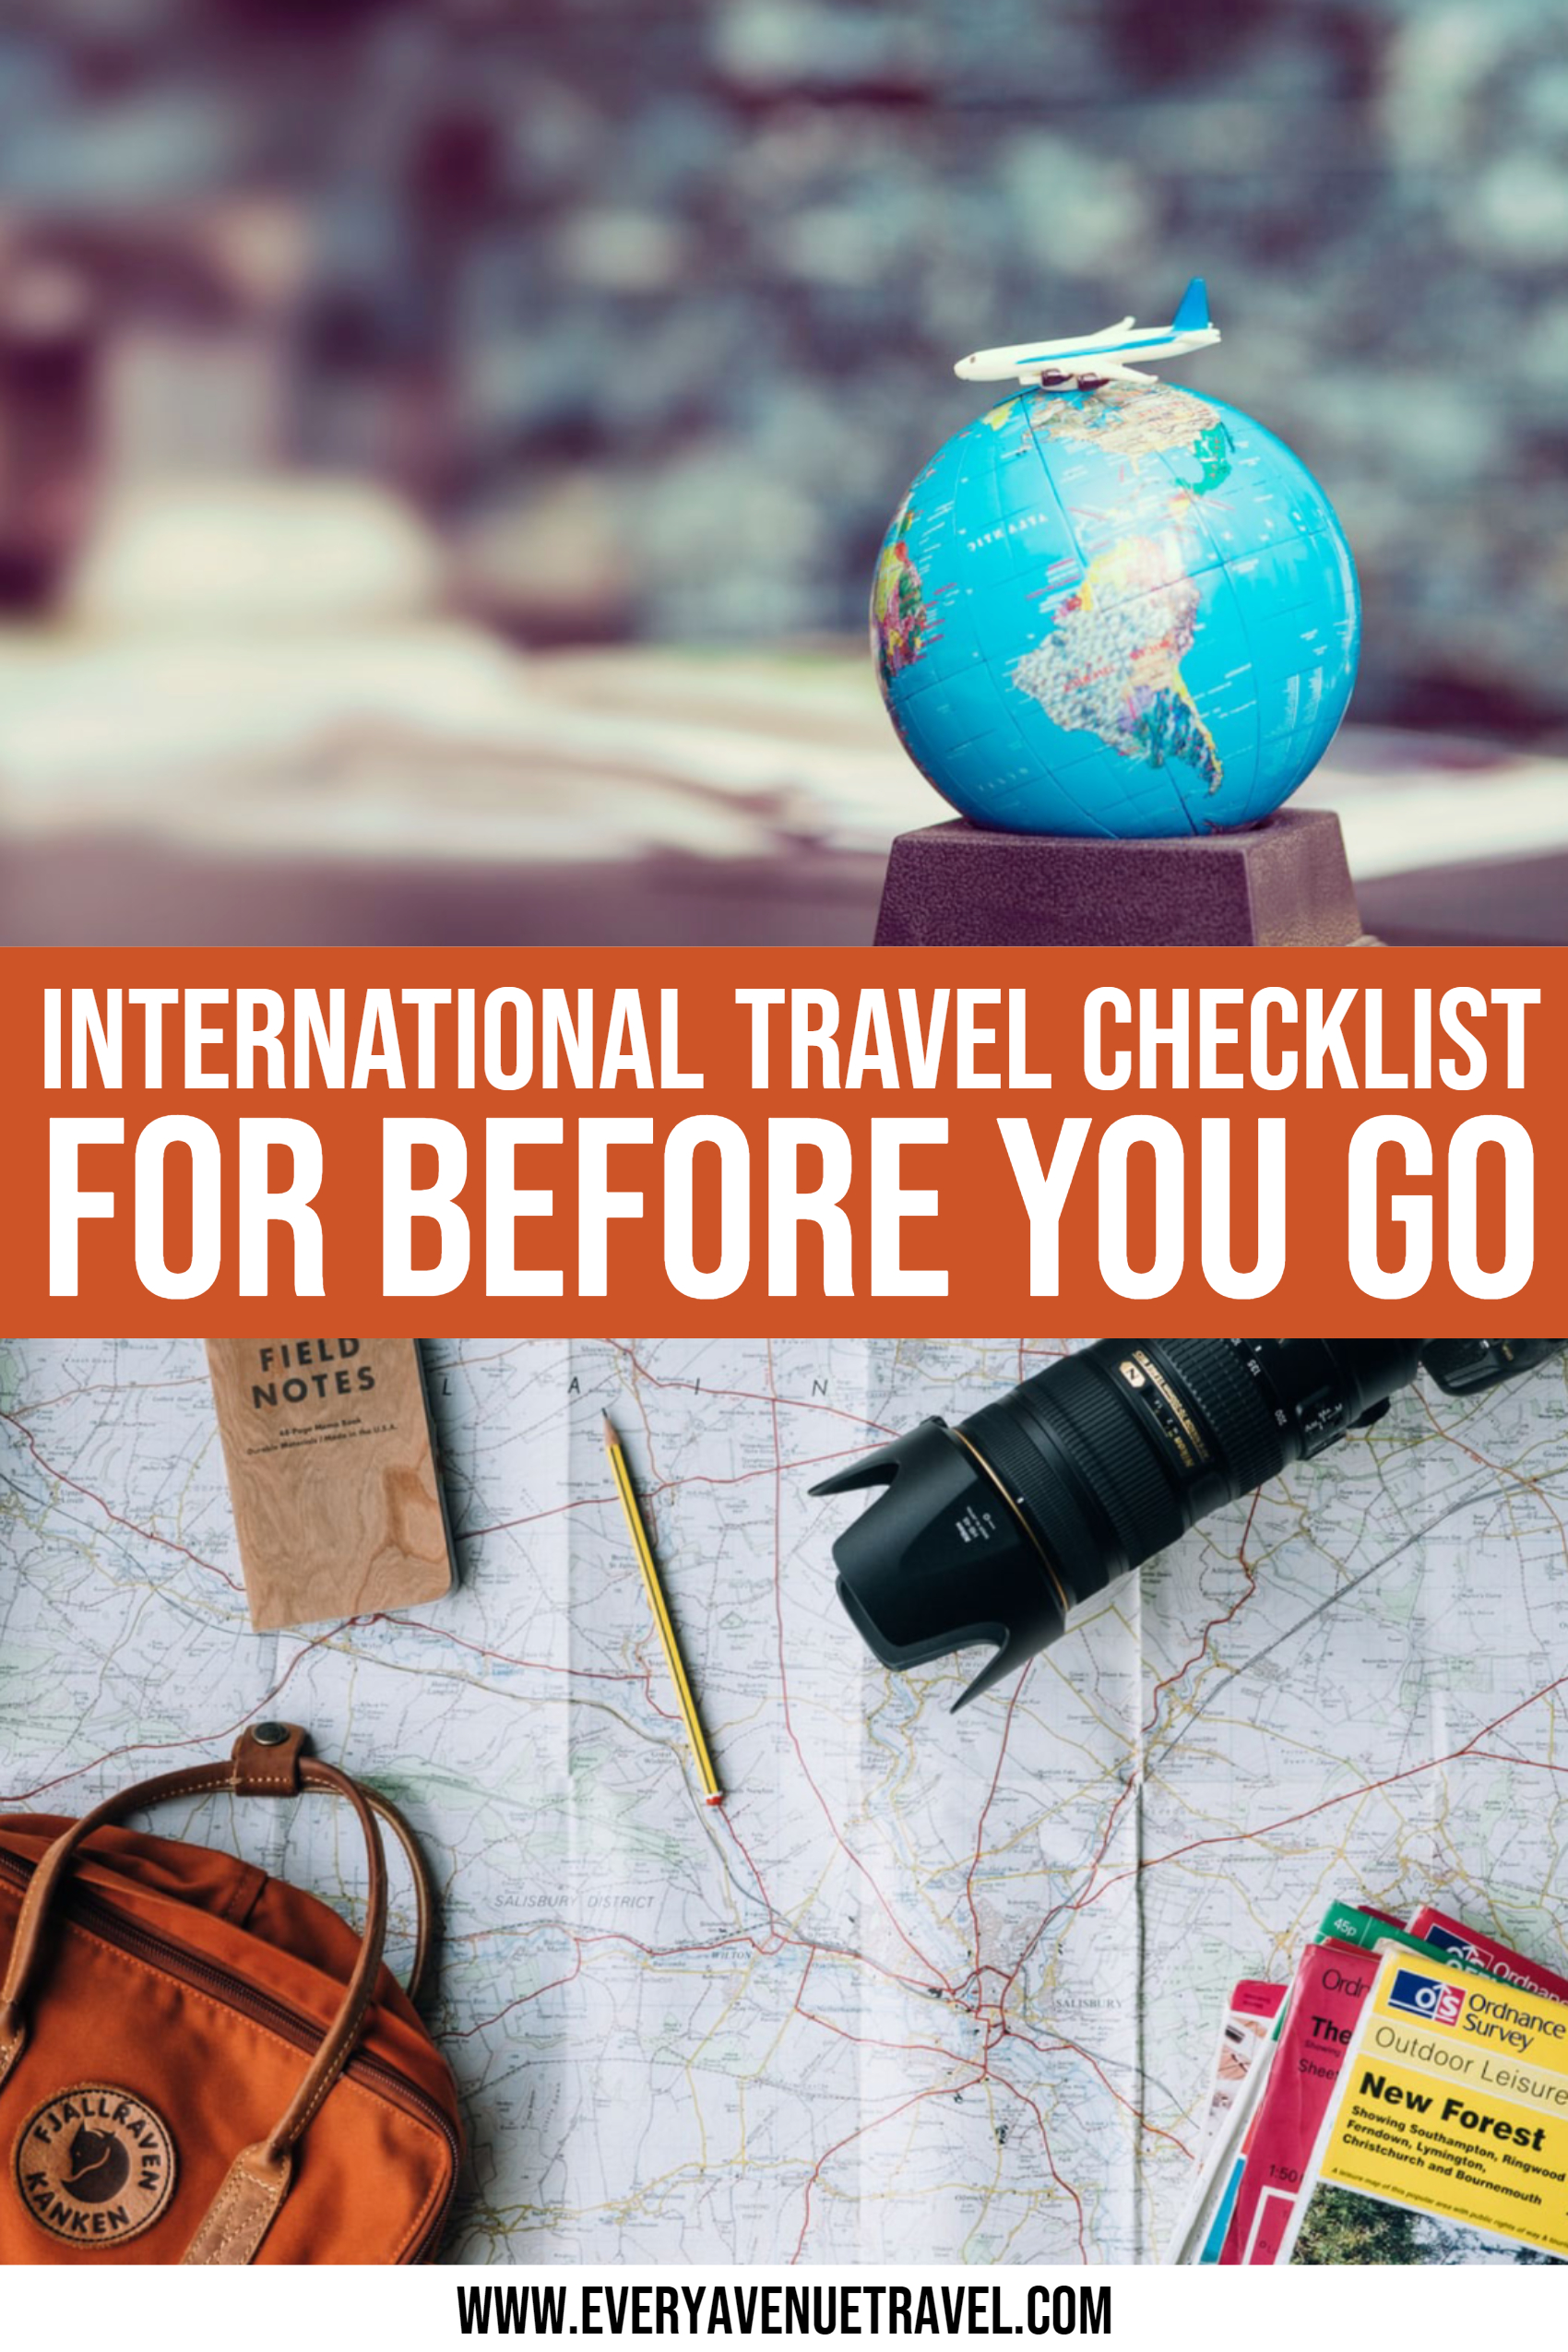 International Travel Checklist For Before You Go!